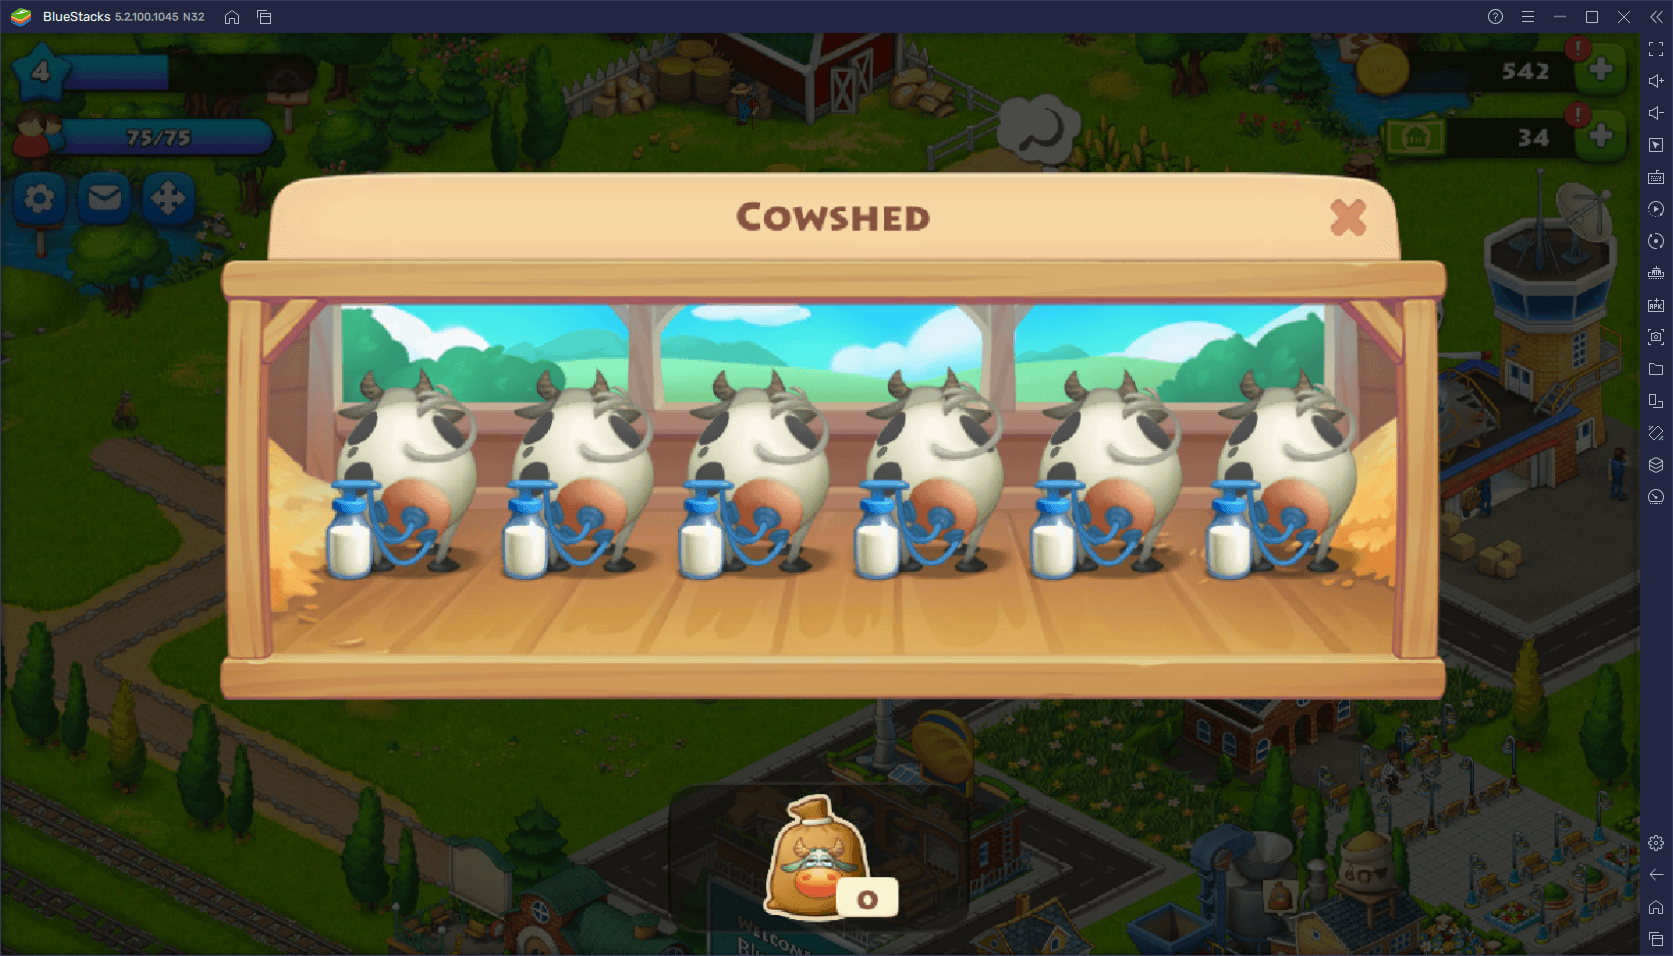 Township on PC – Using BlueStacks' Tools to Develop Your Town in Record Time